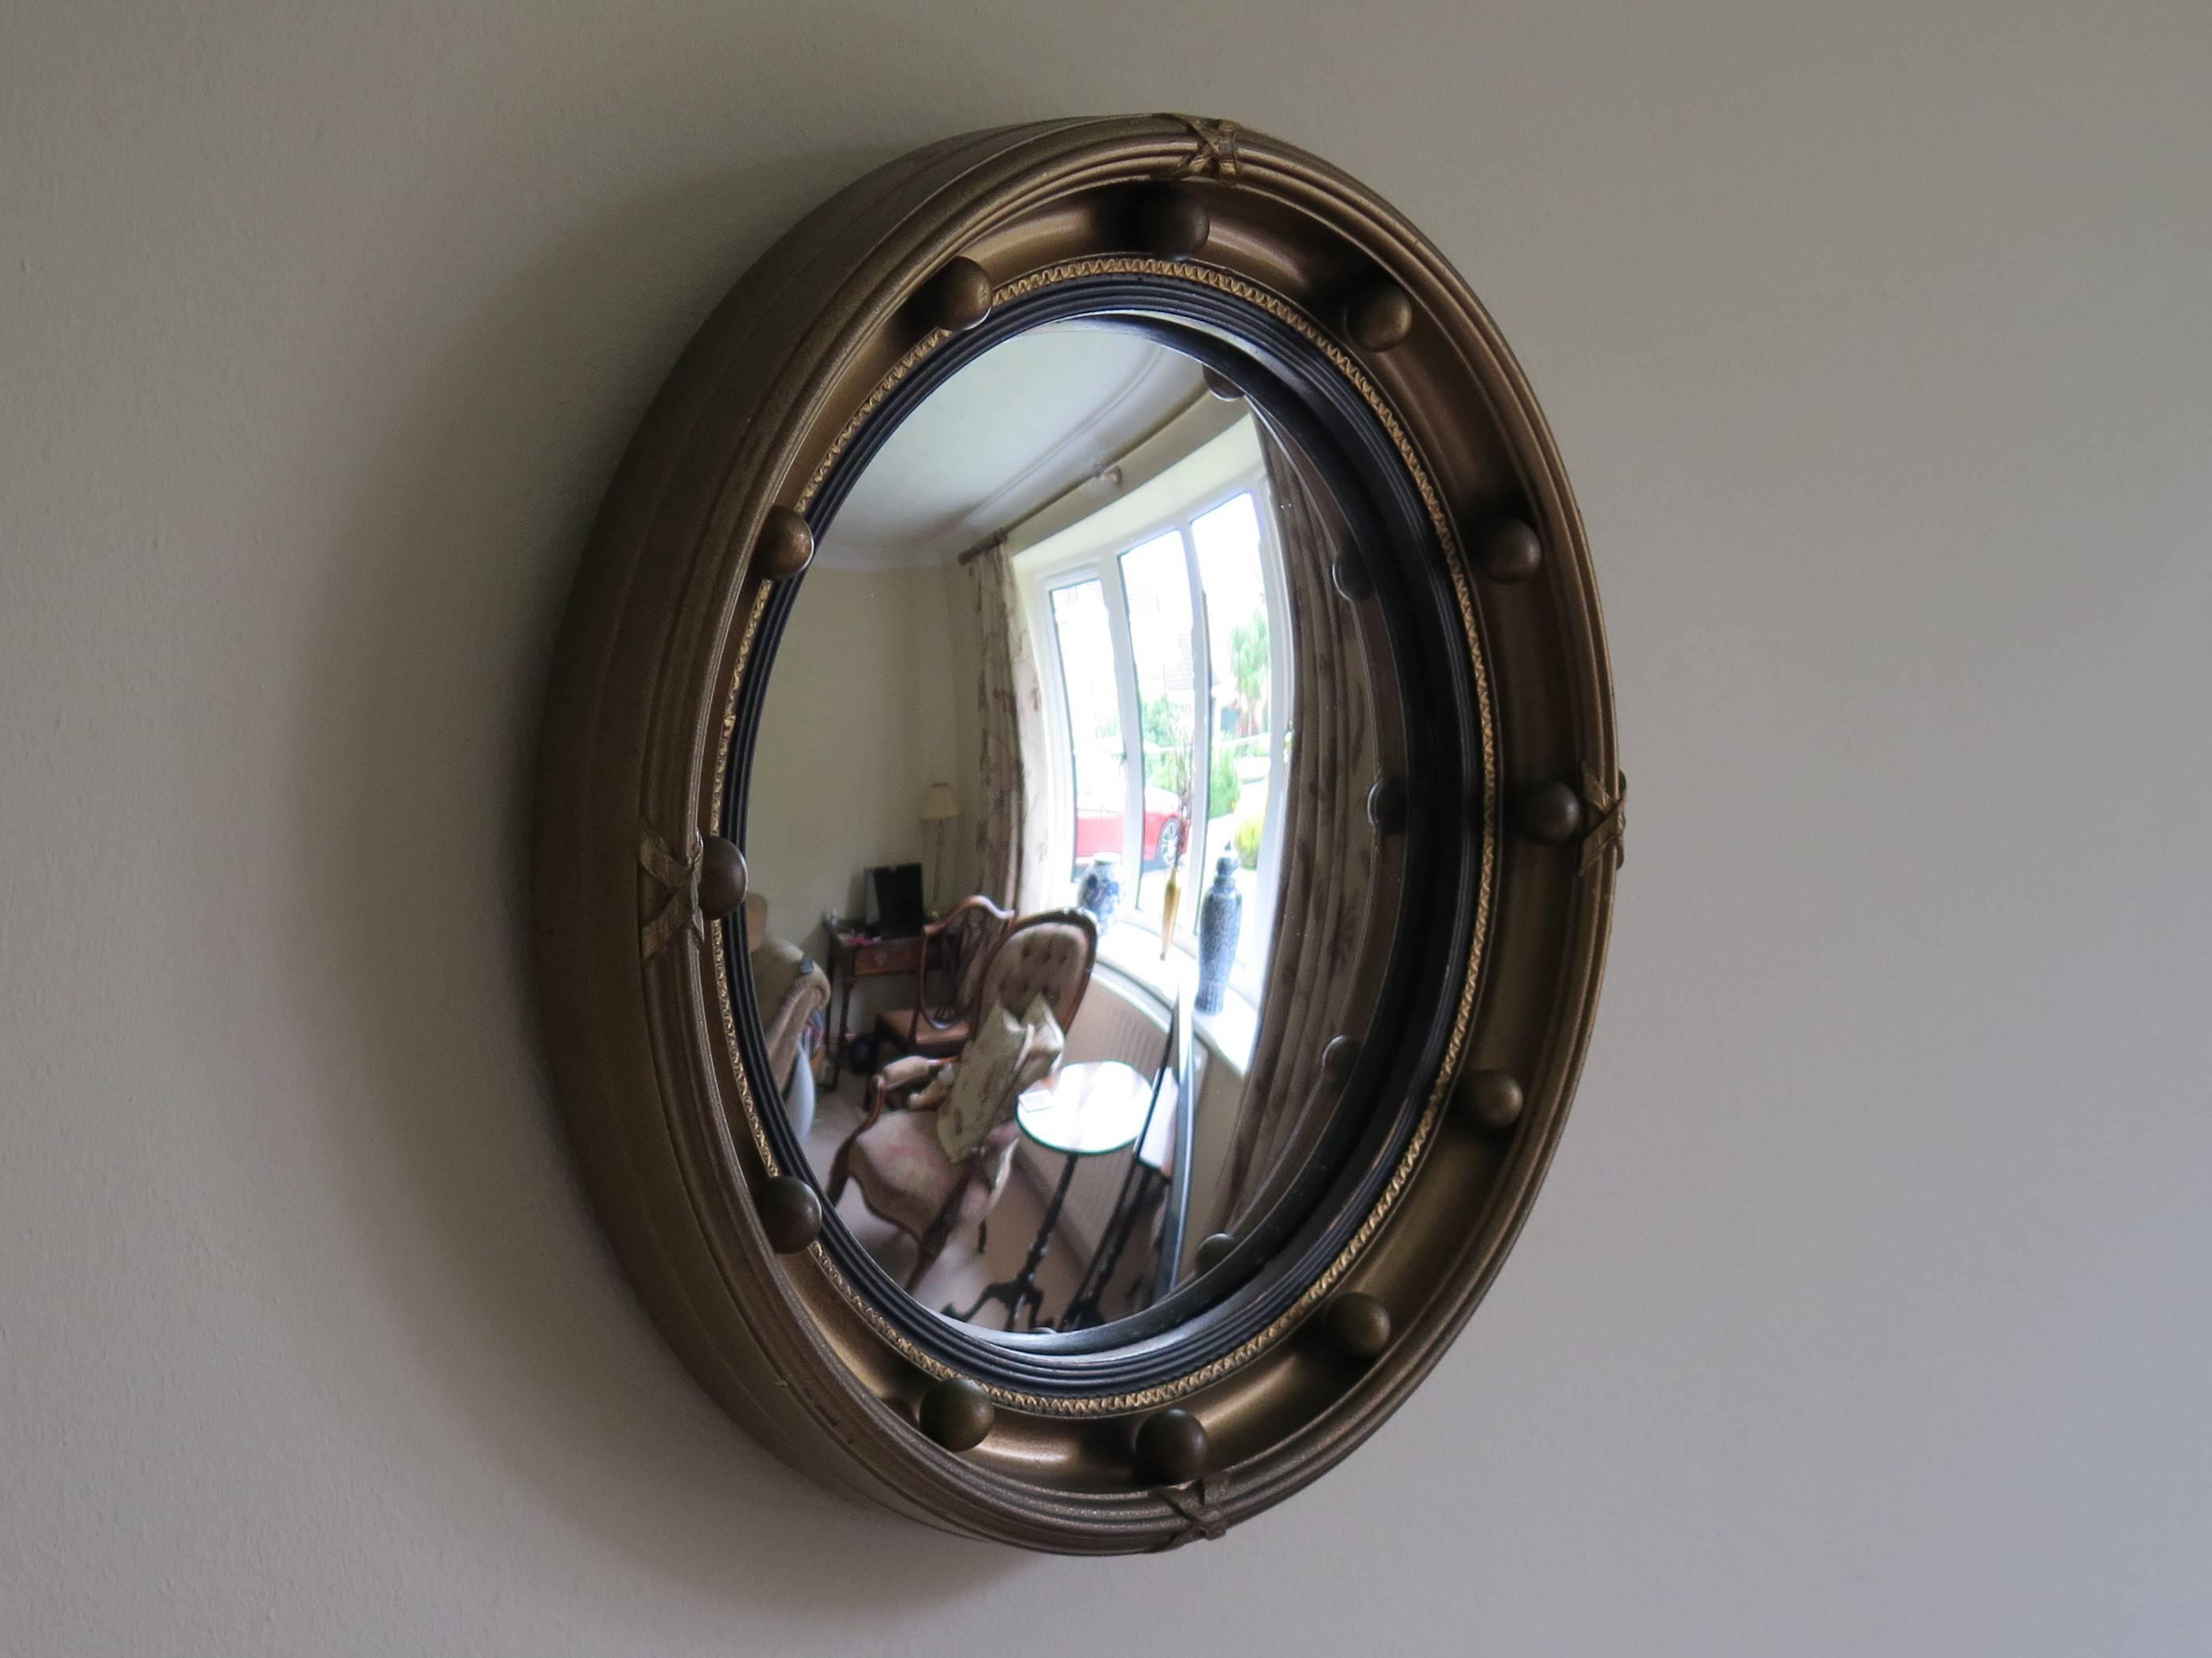 Preferred Small Round Wall Mirrors With Regard To Small Round Convex Wall Mirror, Ribbon And Ball Detail, Regency Style, Ca  1930 (Gallery 19 of 20)